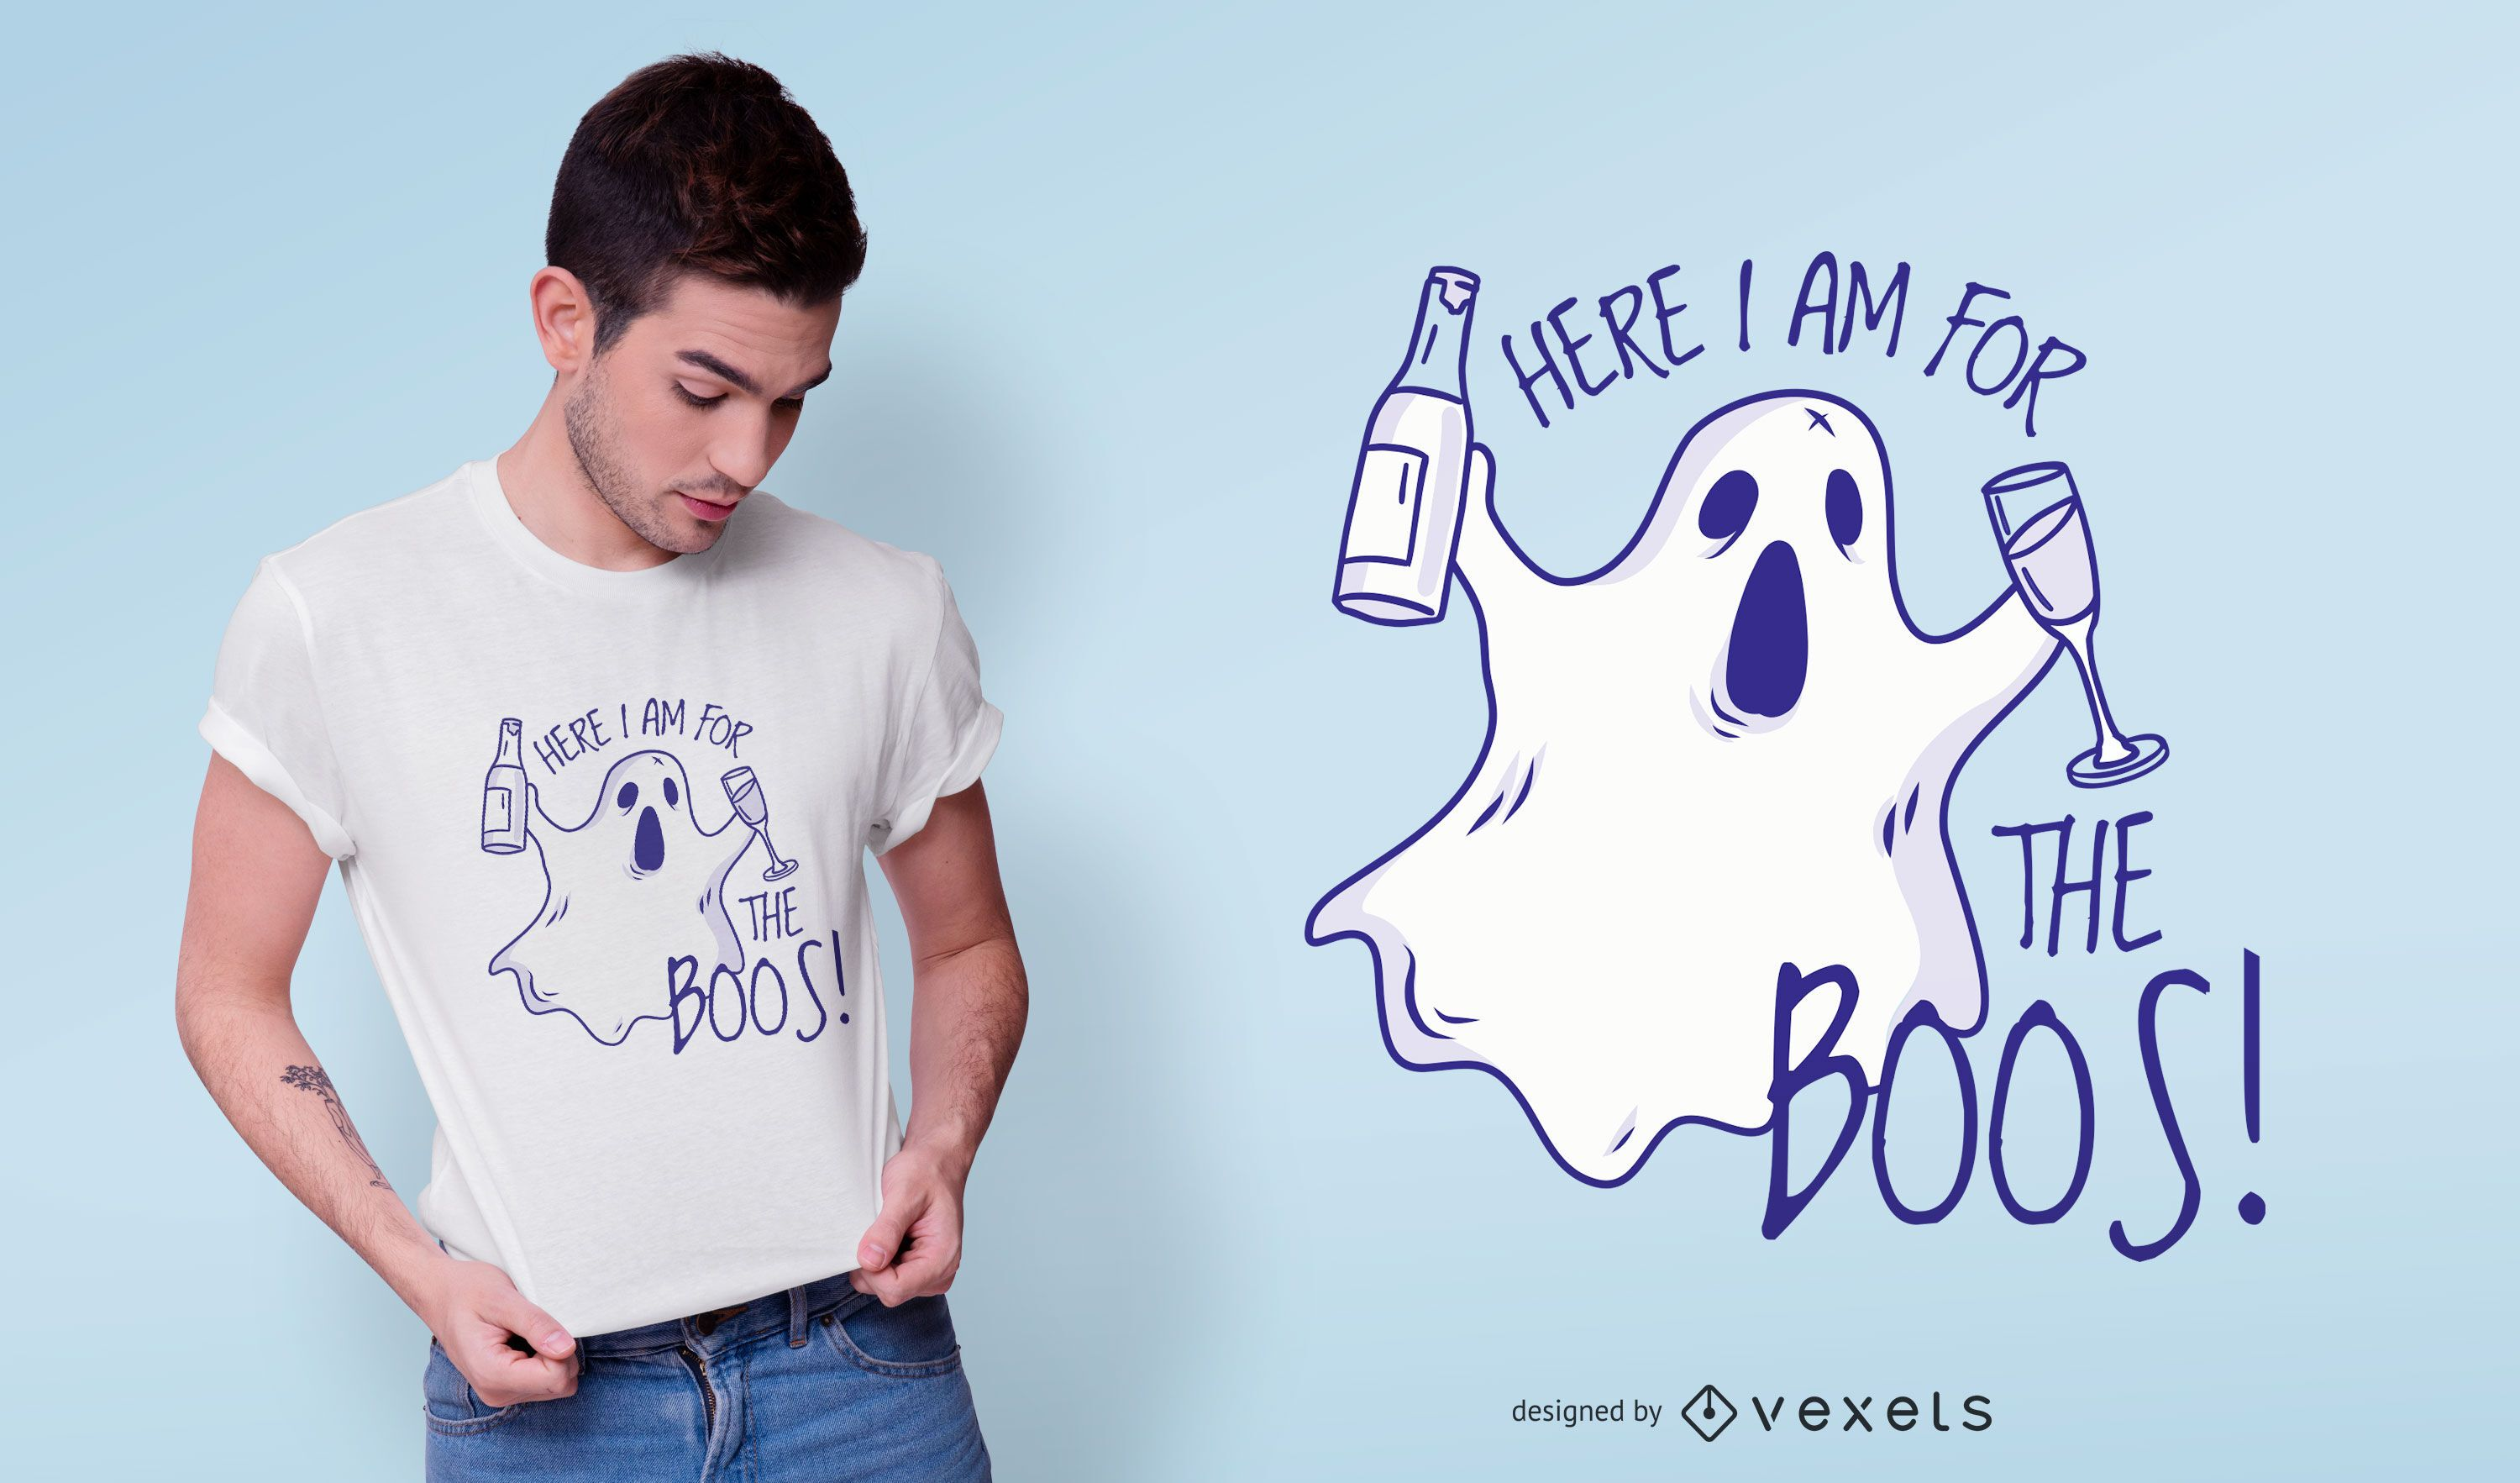 Here for the boos t-shirt design